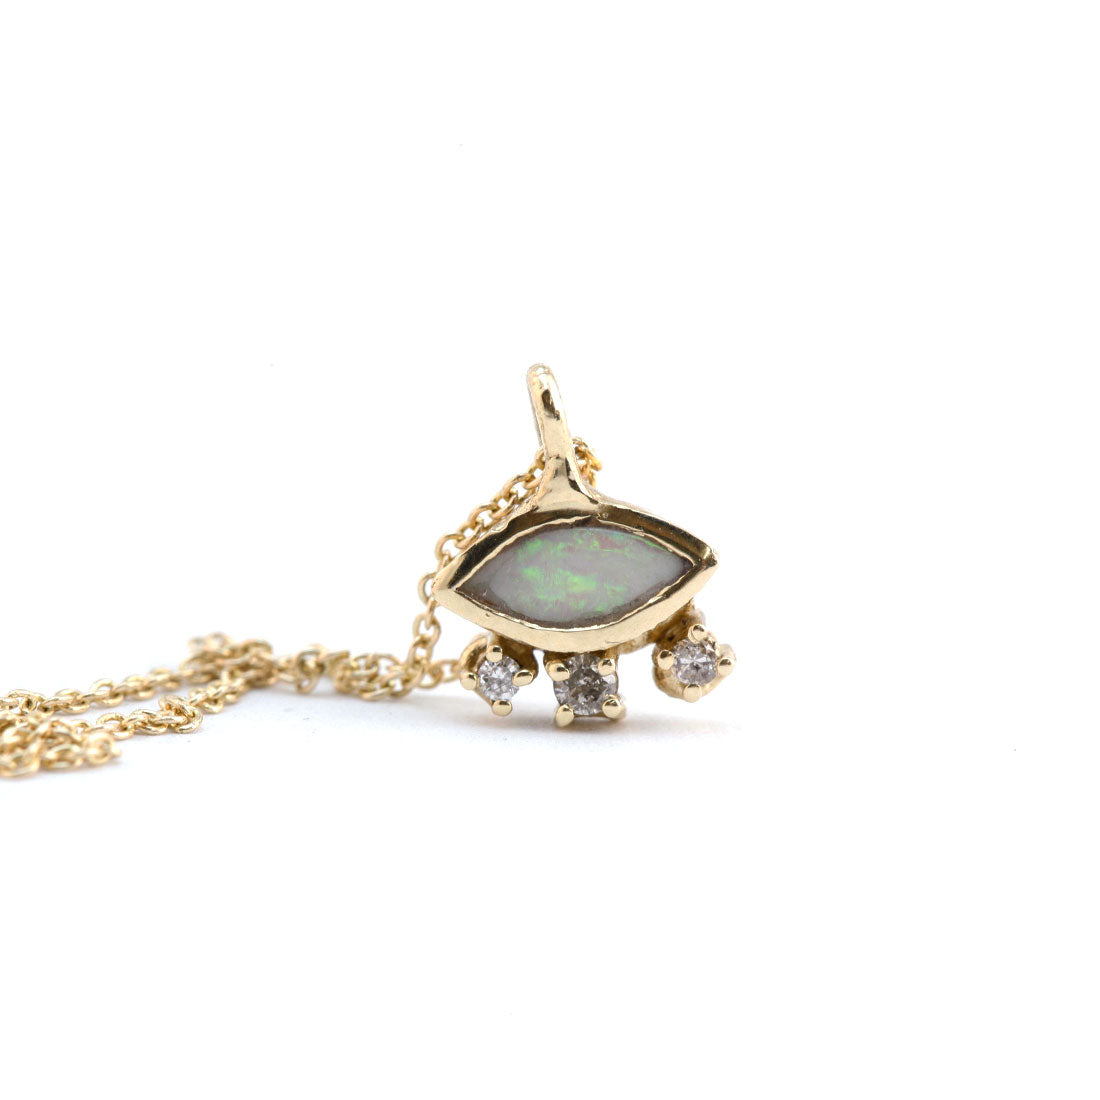 marquis cut opal pendant in gold with diamonds on gold chain